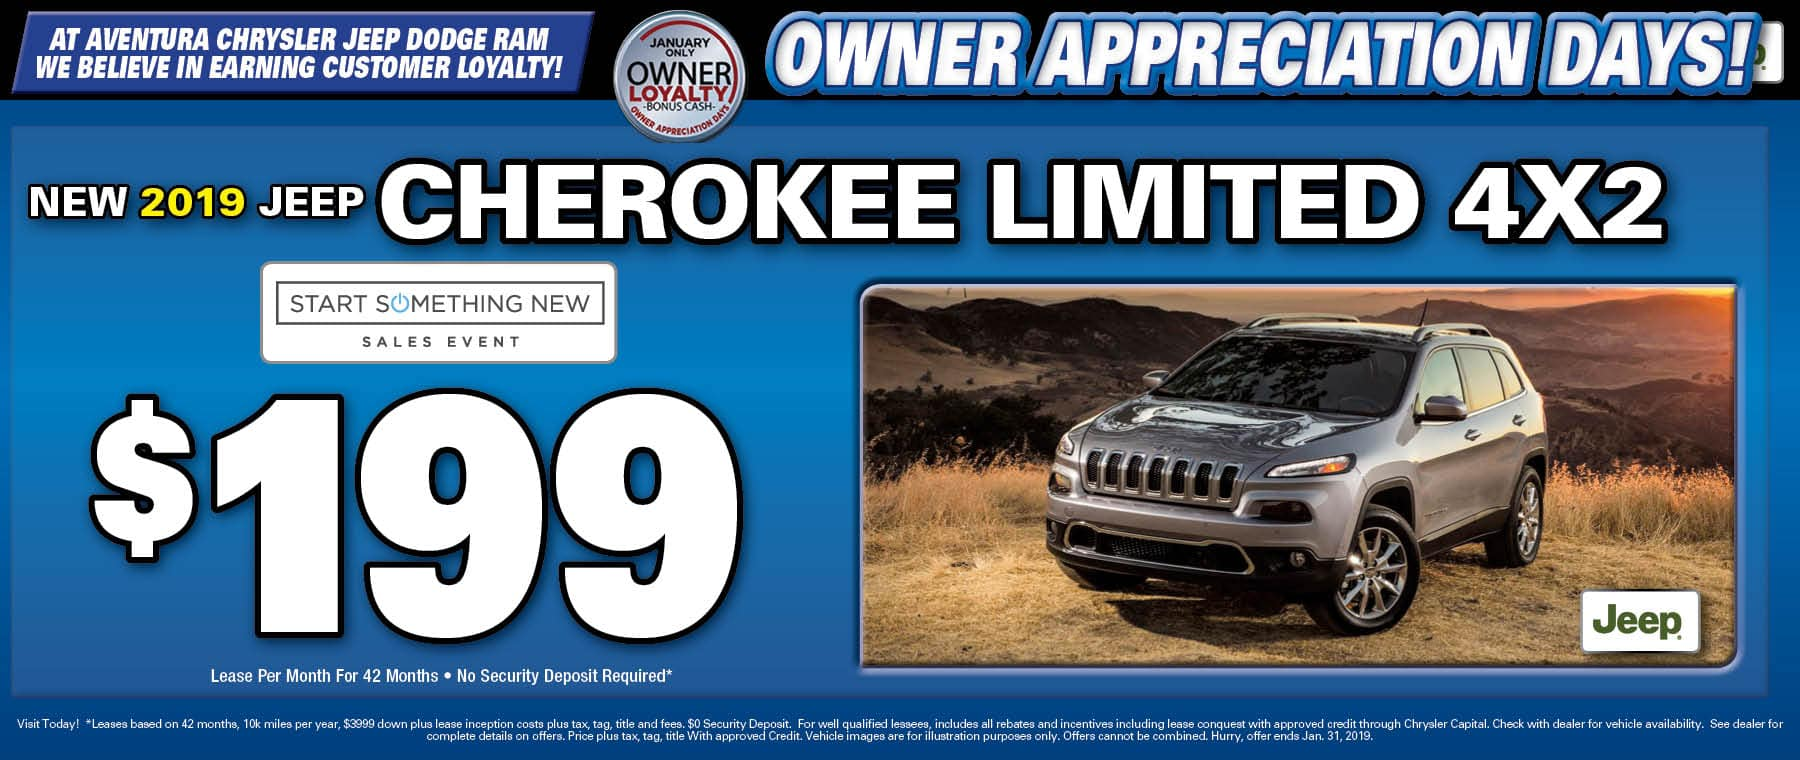 2019 Jeep Cherokee LImited! - Aventura Chrysler Jeep Dodge RAM!